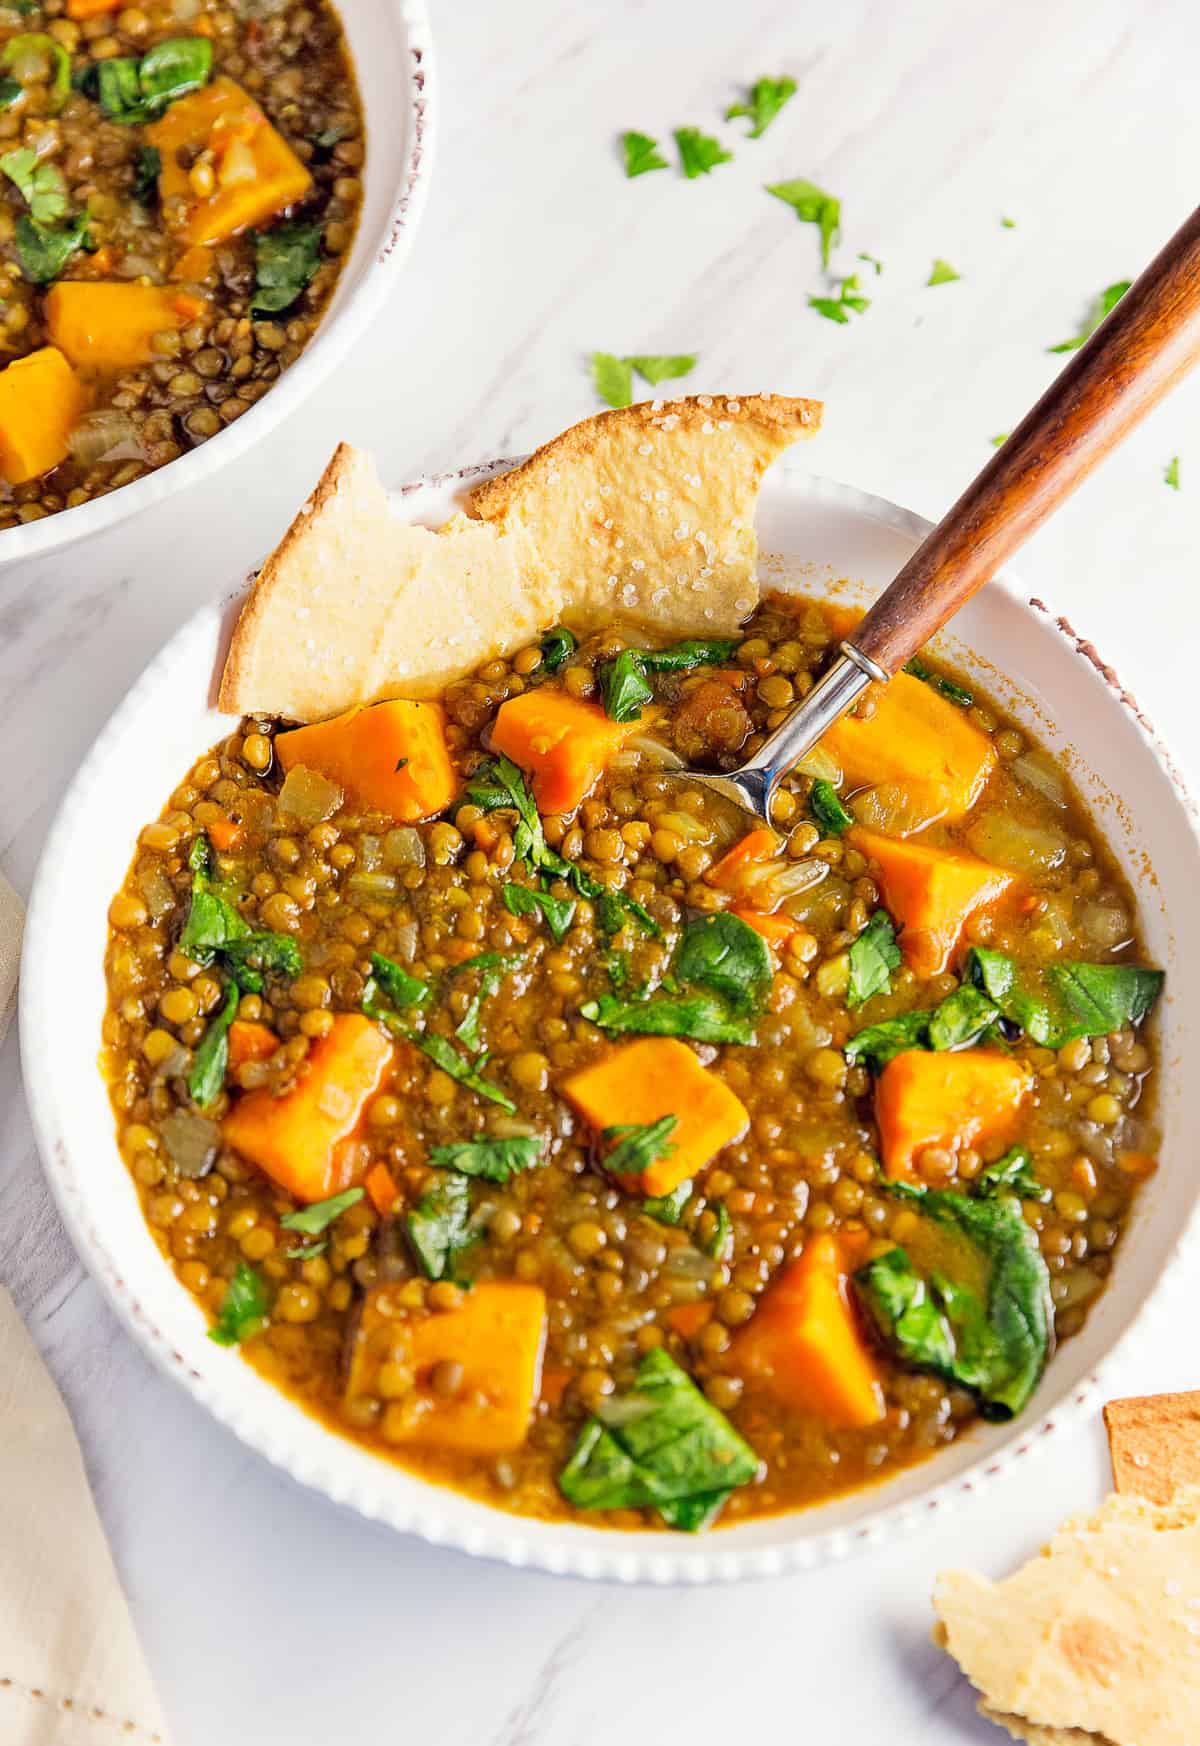 Moroccan Sweet Potato Lentil Stew, vegan, vegetarian, whole food plant based, gluten free, recipe, wfpb, healthy, oil free, no refined sugar, no oil, refined sugar free, dinner, side, side dish, dairy free, dinner party, entertaining, menu, plant based menu, vegan menu, weekly menu, meal plan, vegan meal plan, plant based meal plan